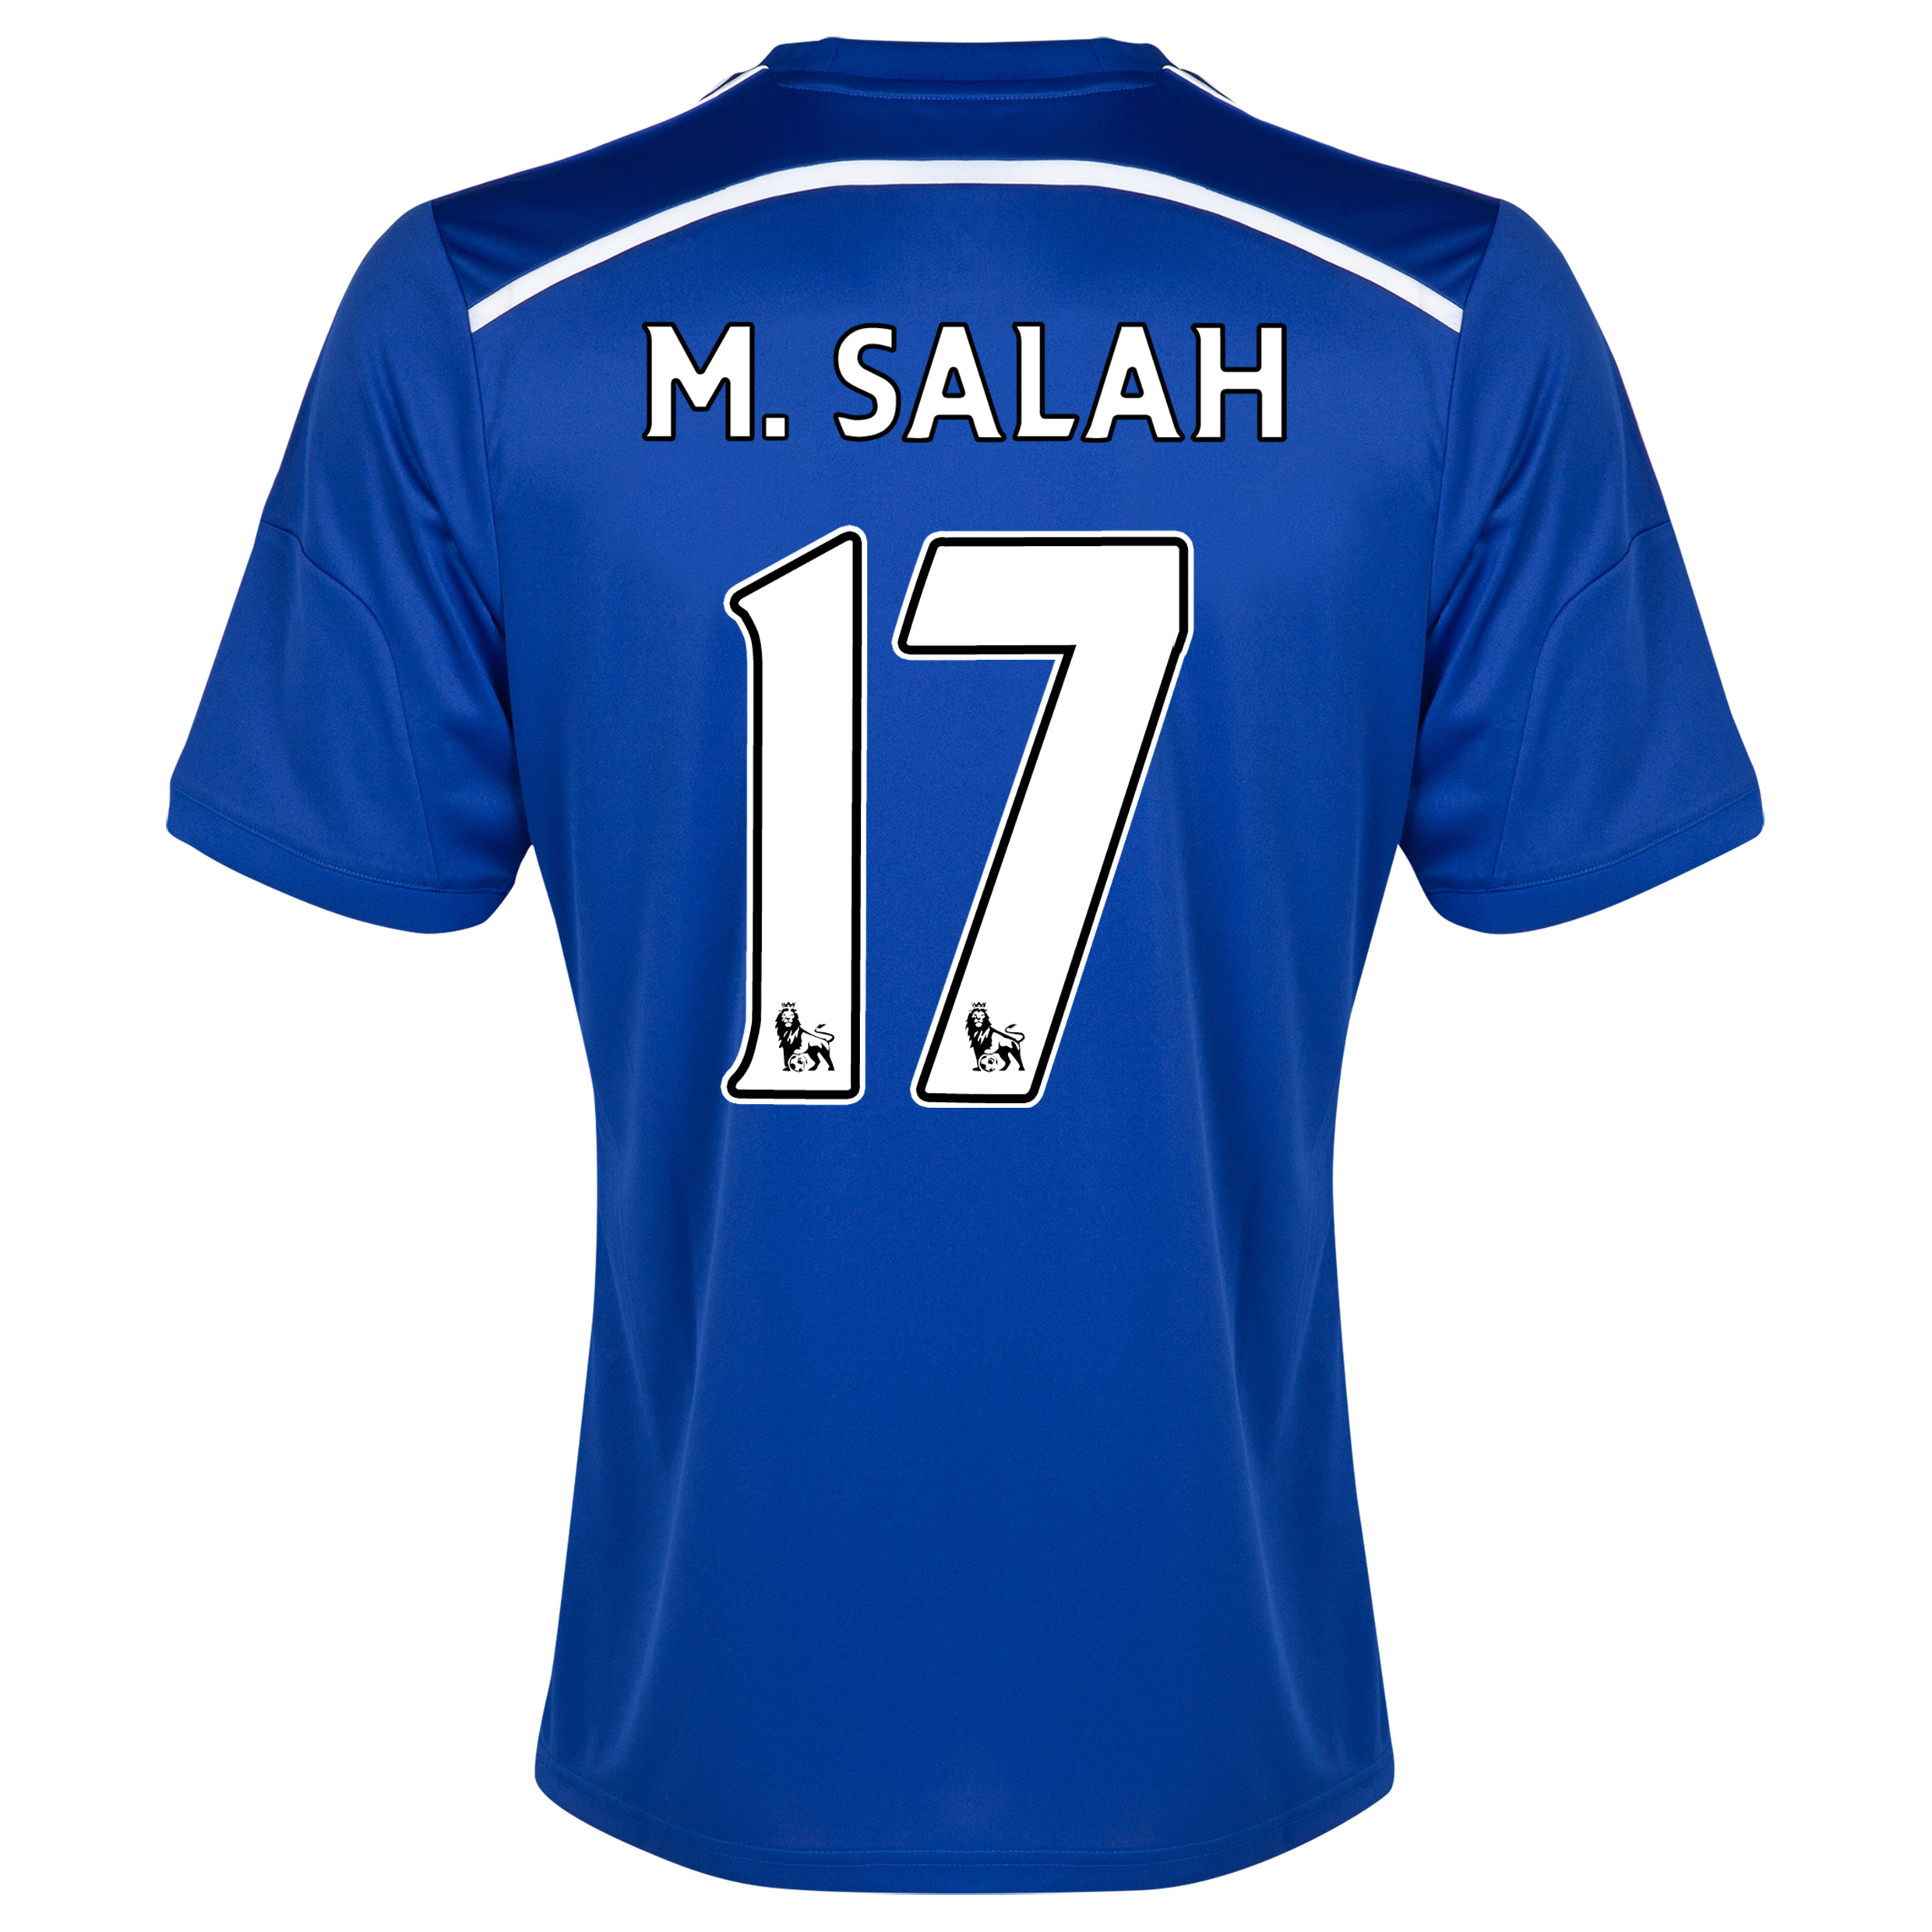 Chelsea Home Shirt 2014/15 Blue with M. Salah 17 printing